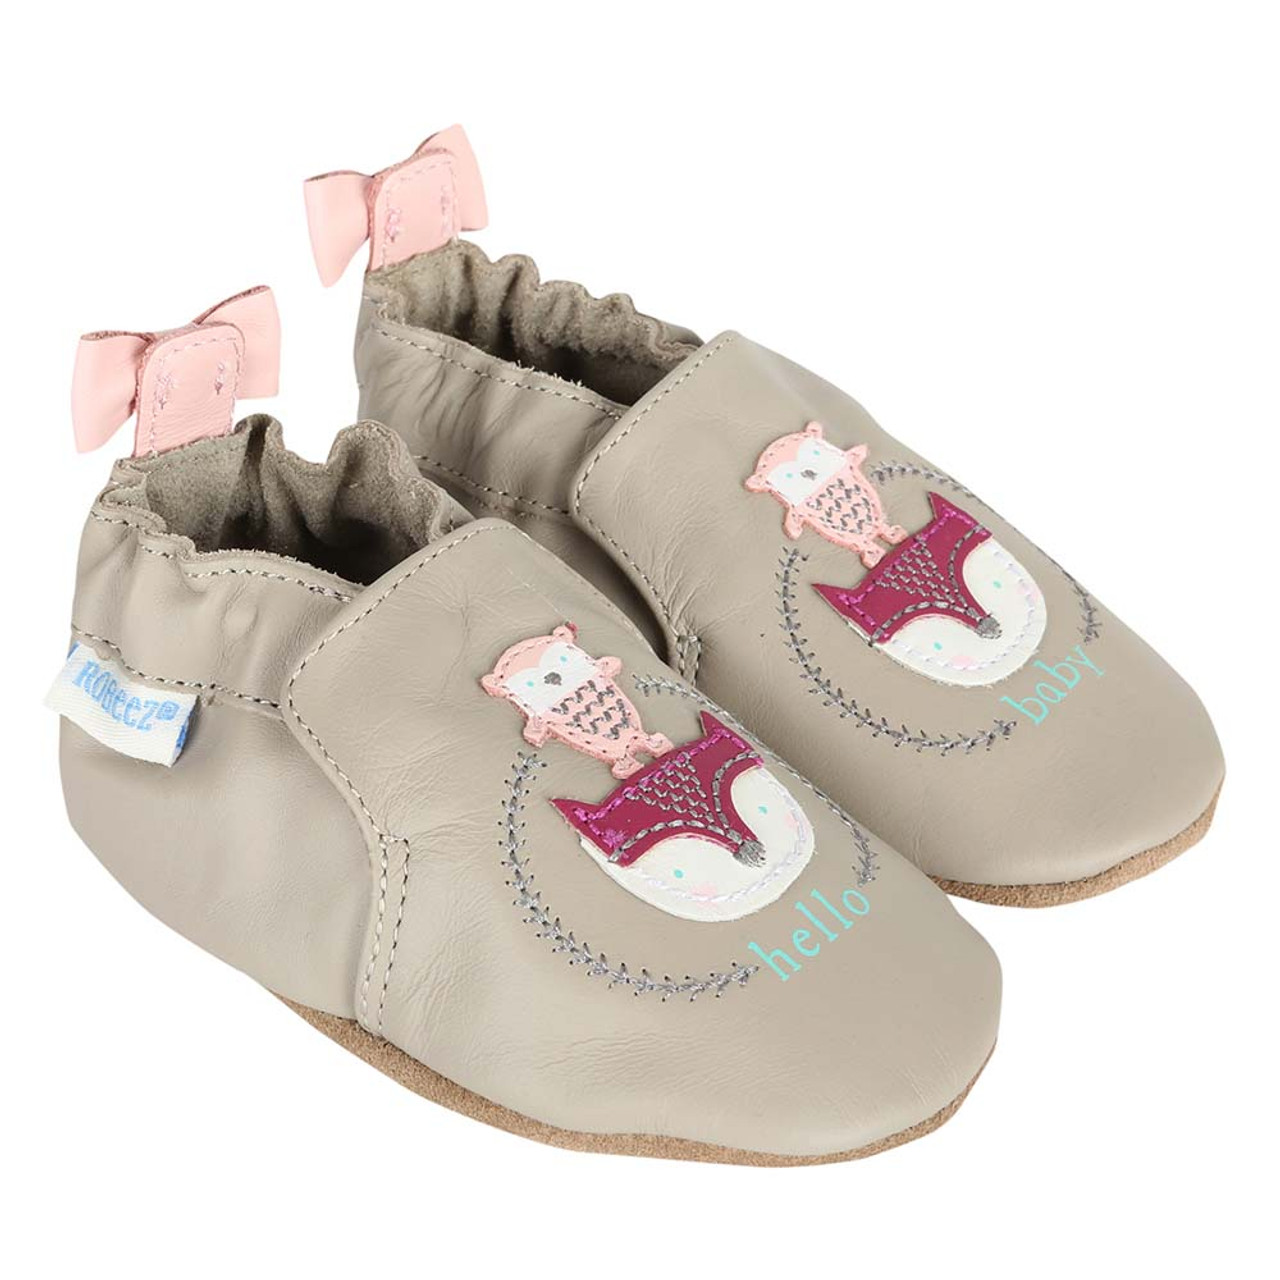 Baby Shoes Hello Baby Friends Soft Soles Girls Ages 0 24 Months